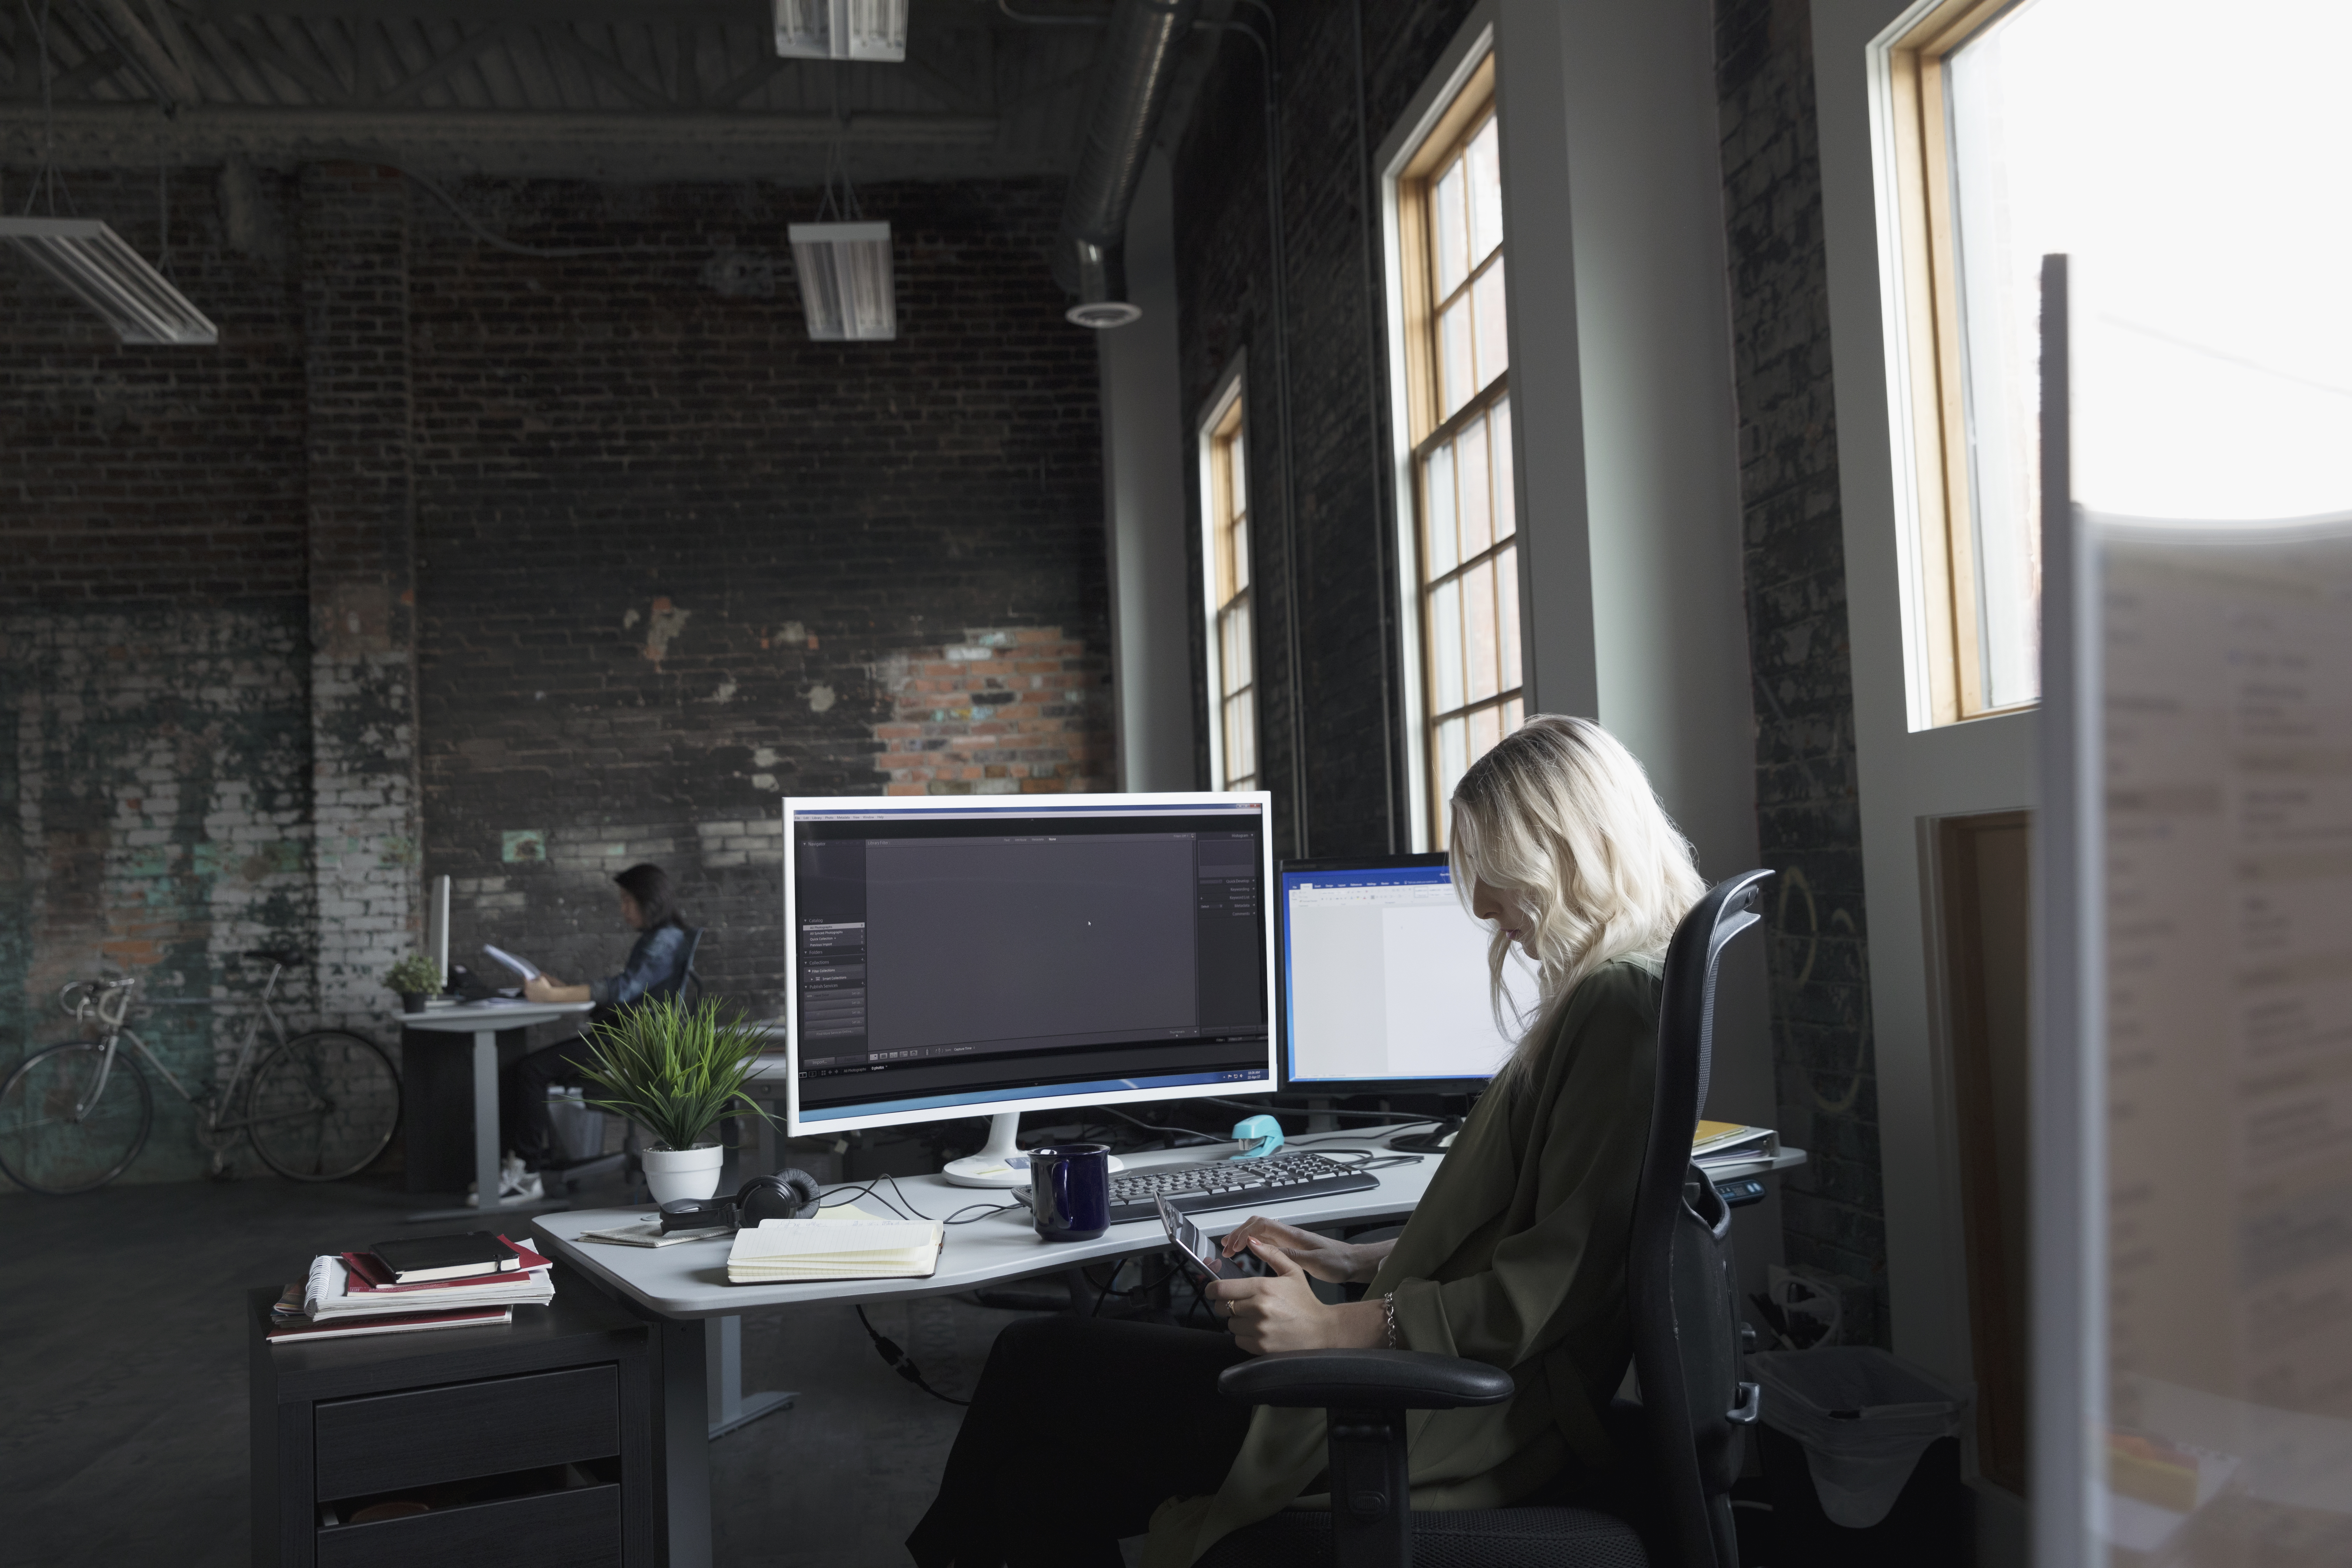 Businesswoman working at computer in office